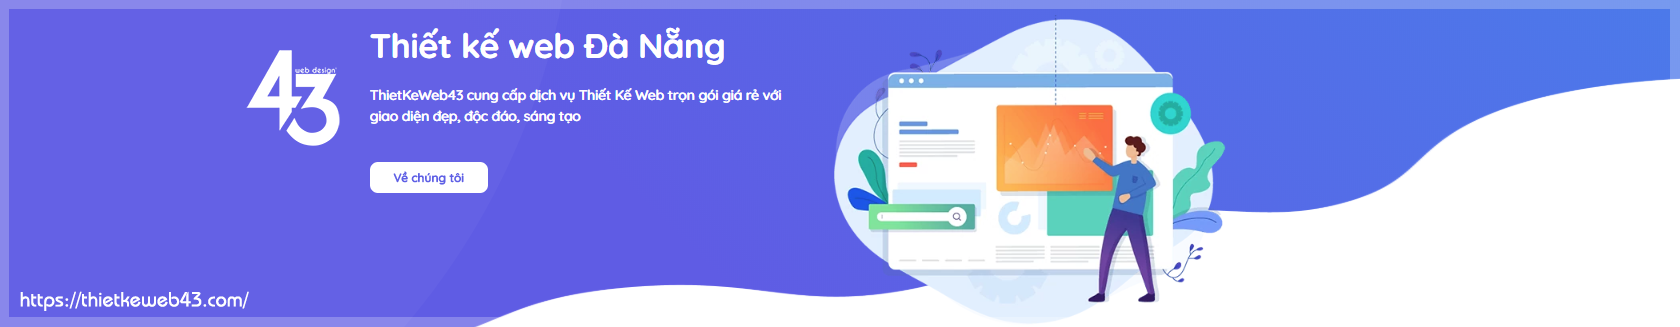 Thiết kế web Đà Nẵng